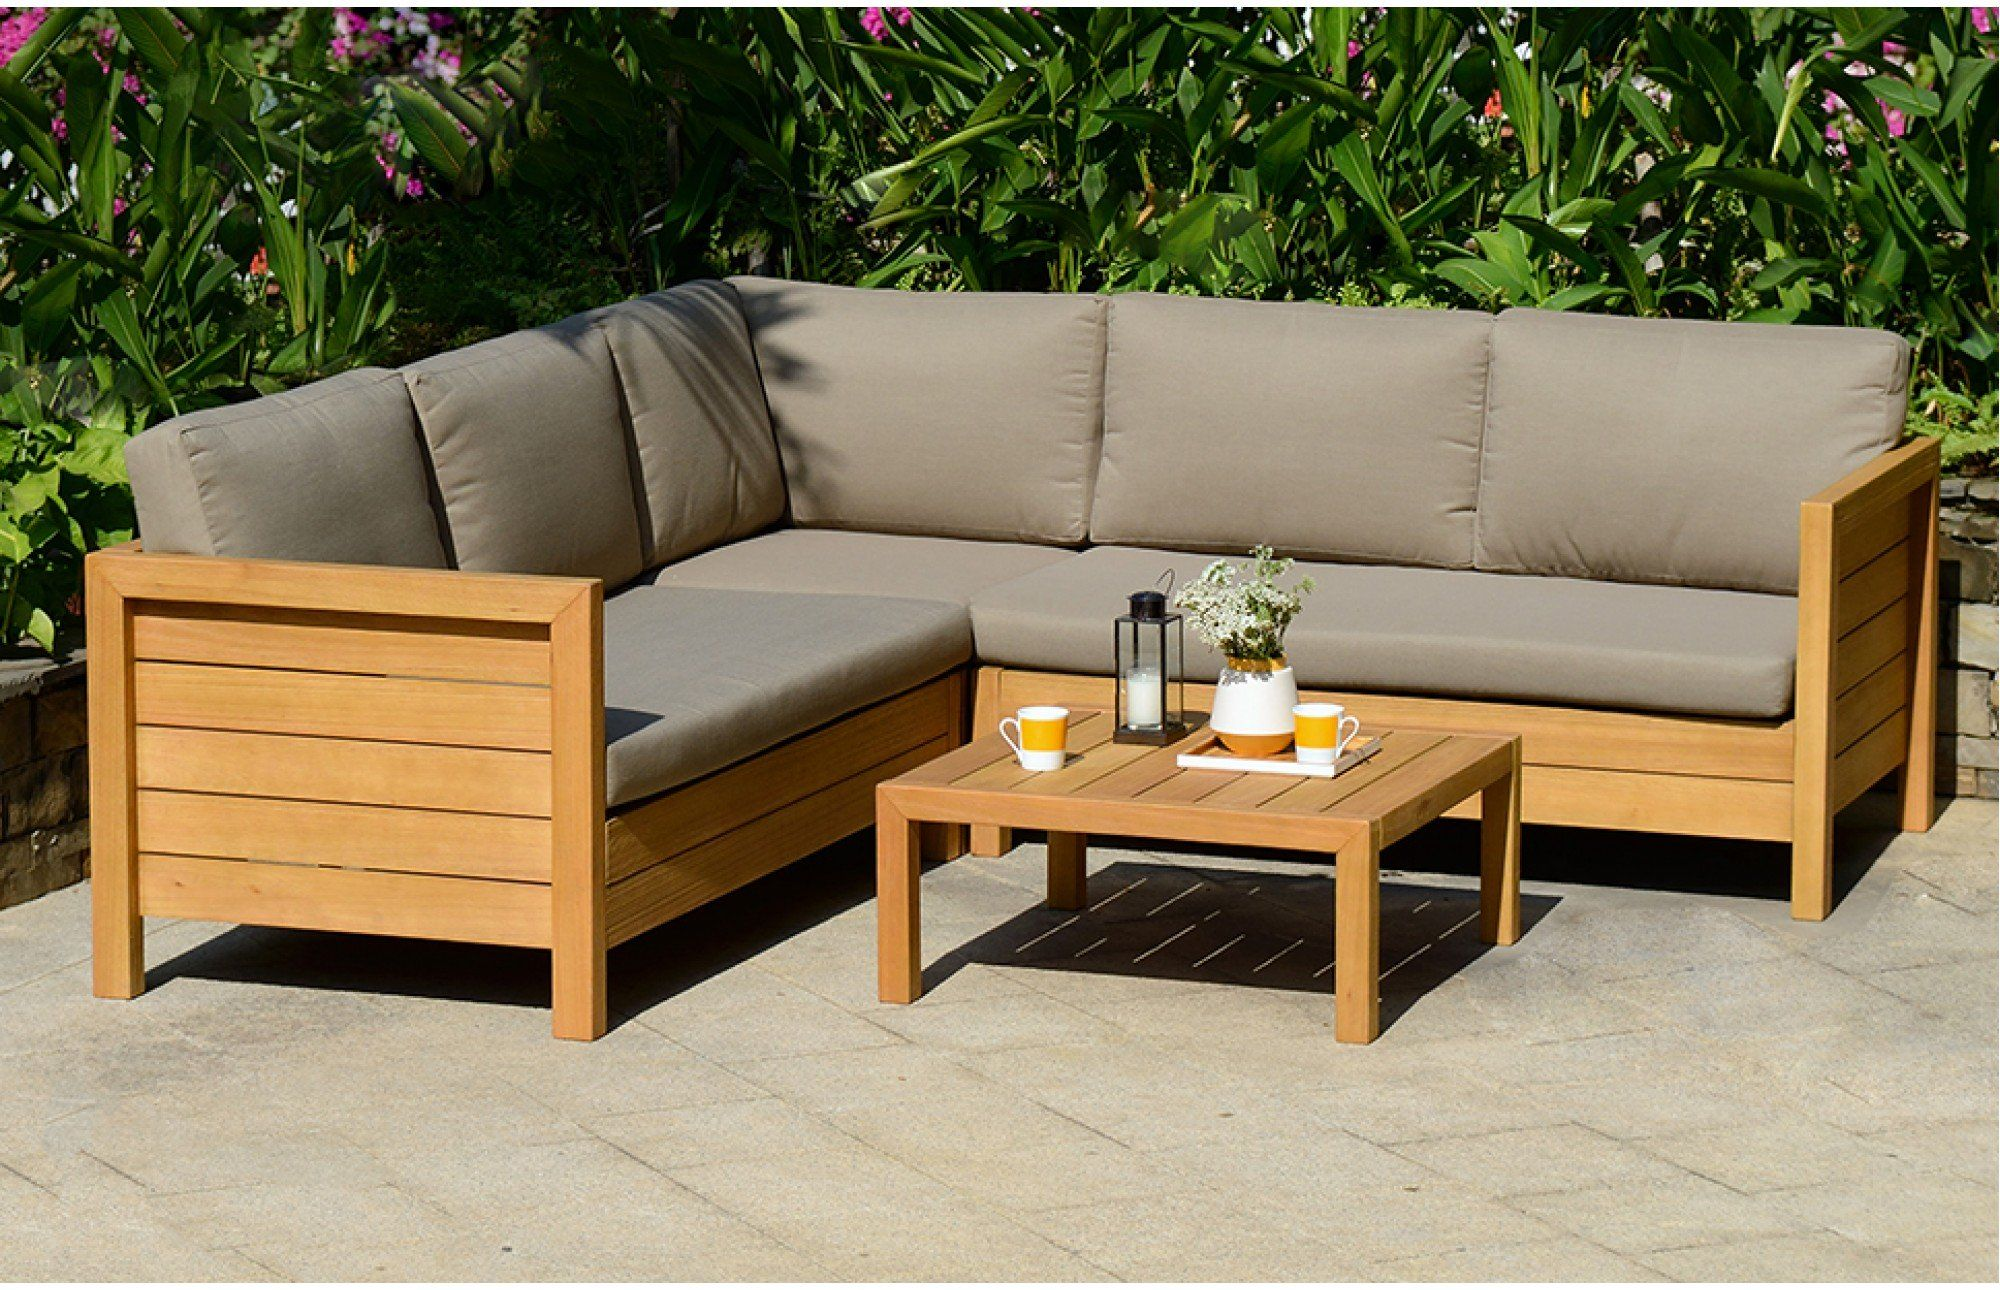 Enjoyable This Lodge Garden Set Comes In A Beautiful Teak Look Finish Pdpeps Interior Chair Design Pdpepsorg